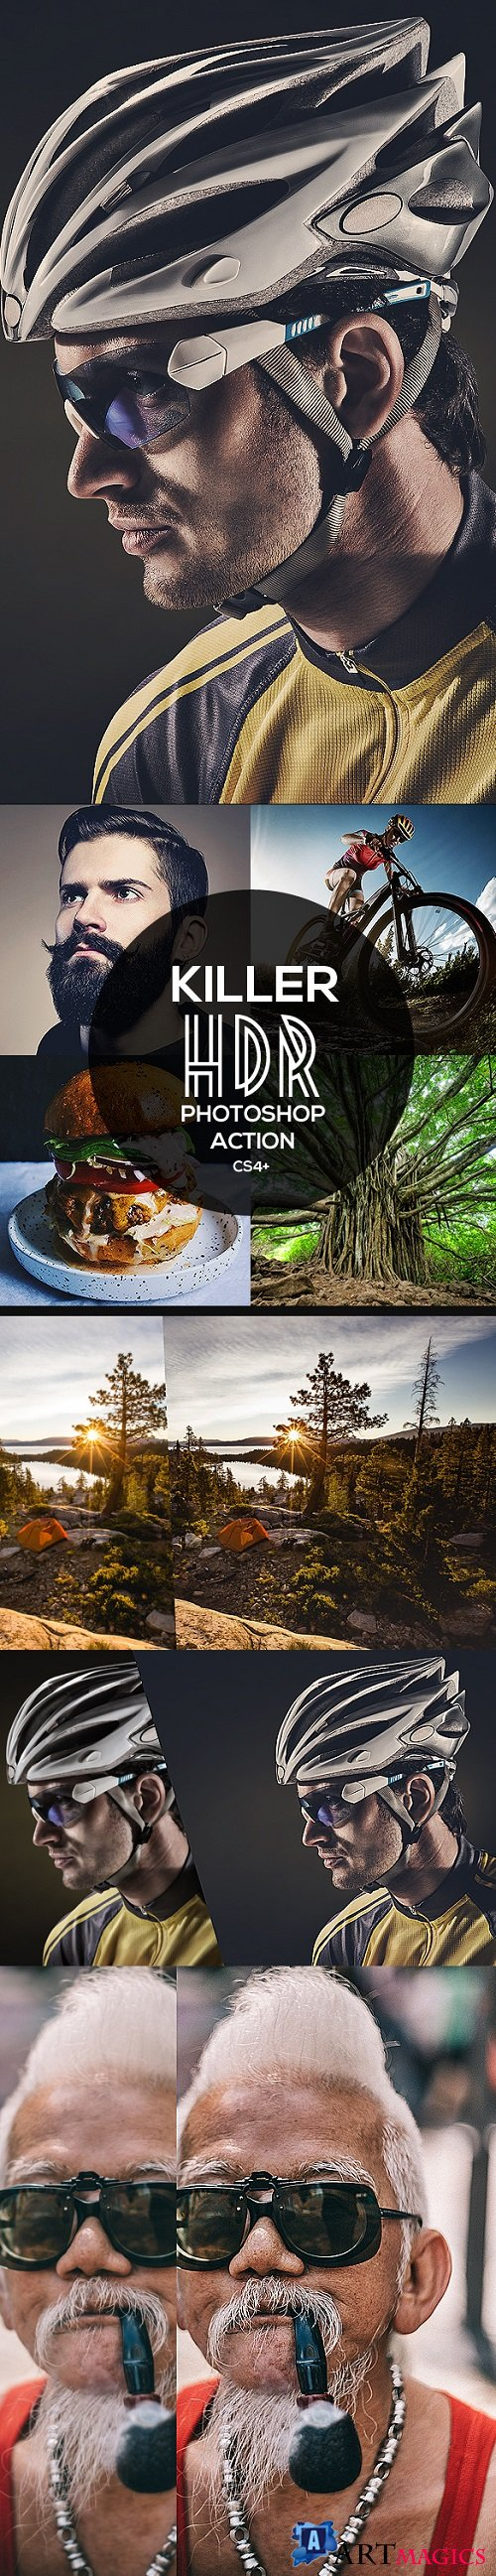 20 HDR Killer Photoshop Action 21199052